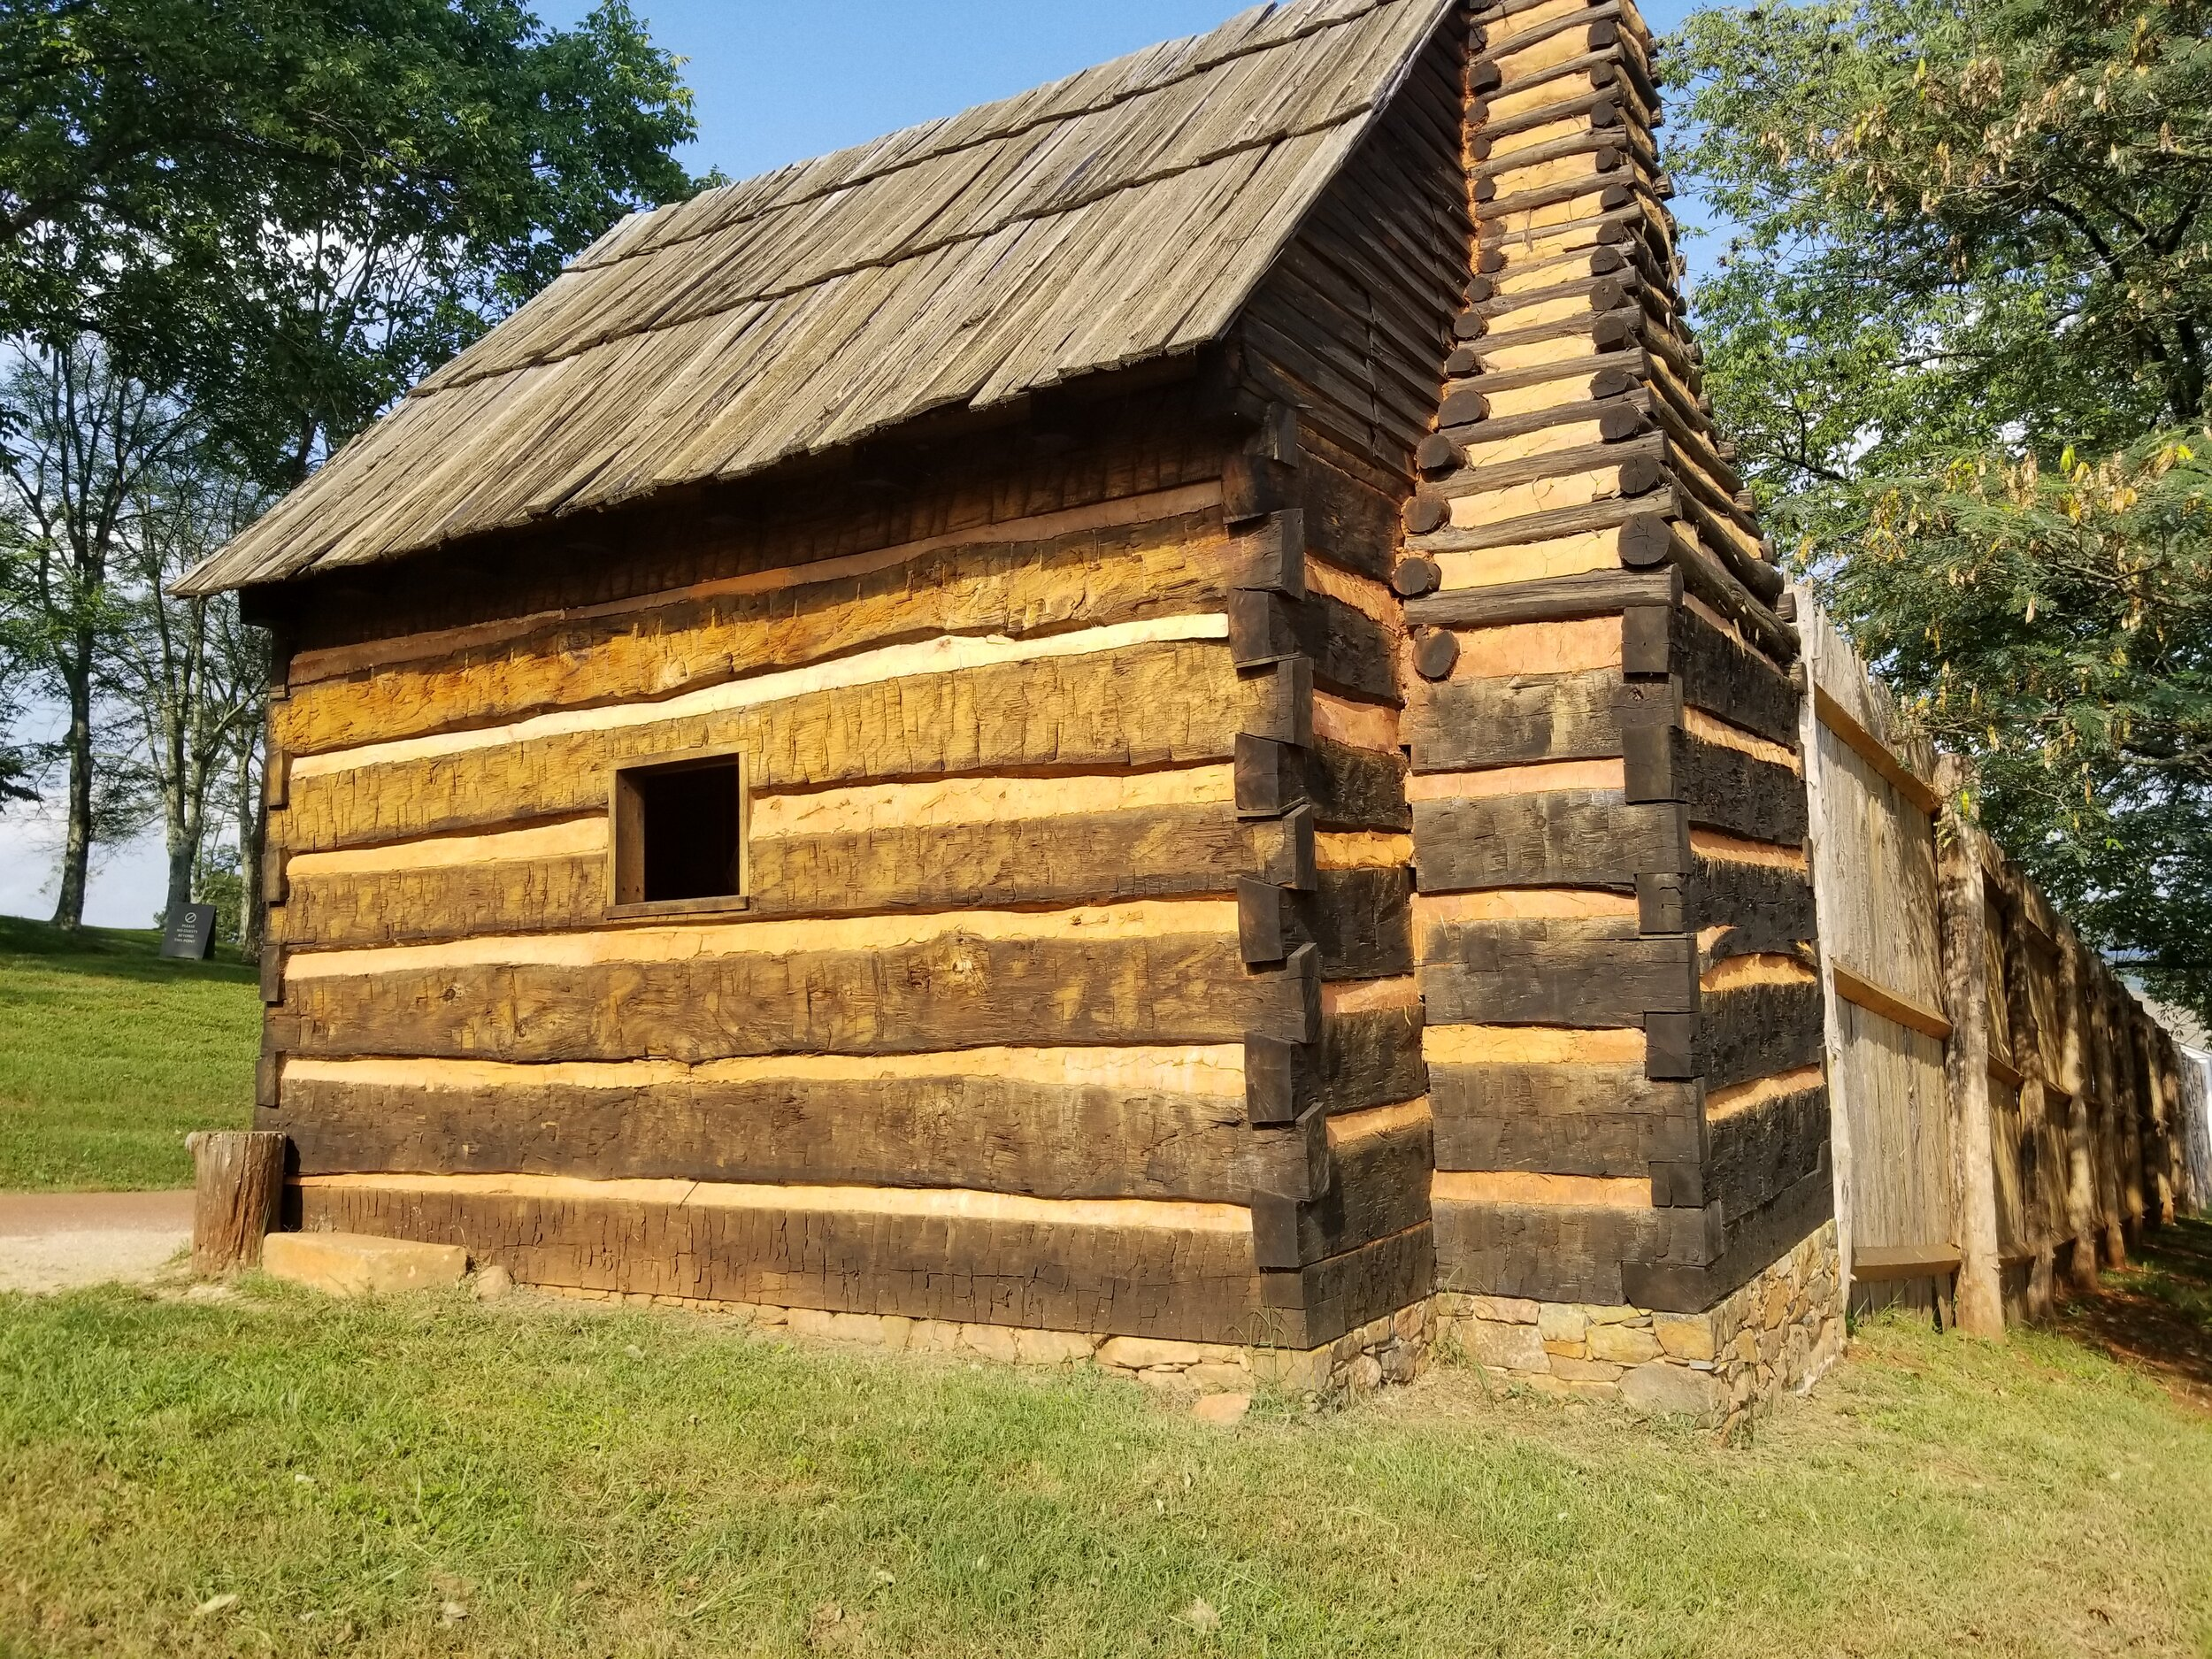 Cabin for enslaved laborers at Thomas Jefferson's Monticello in Charlottesville, Virginia